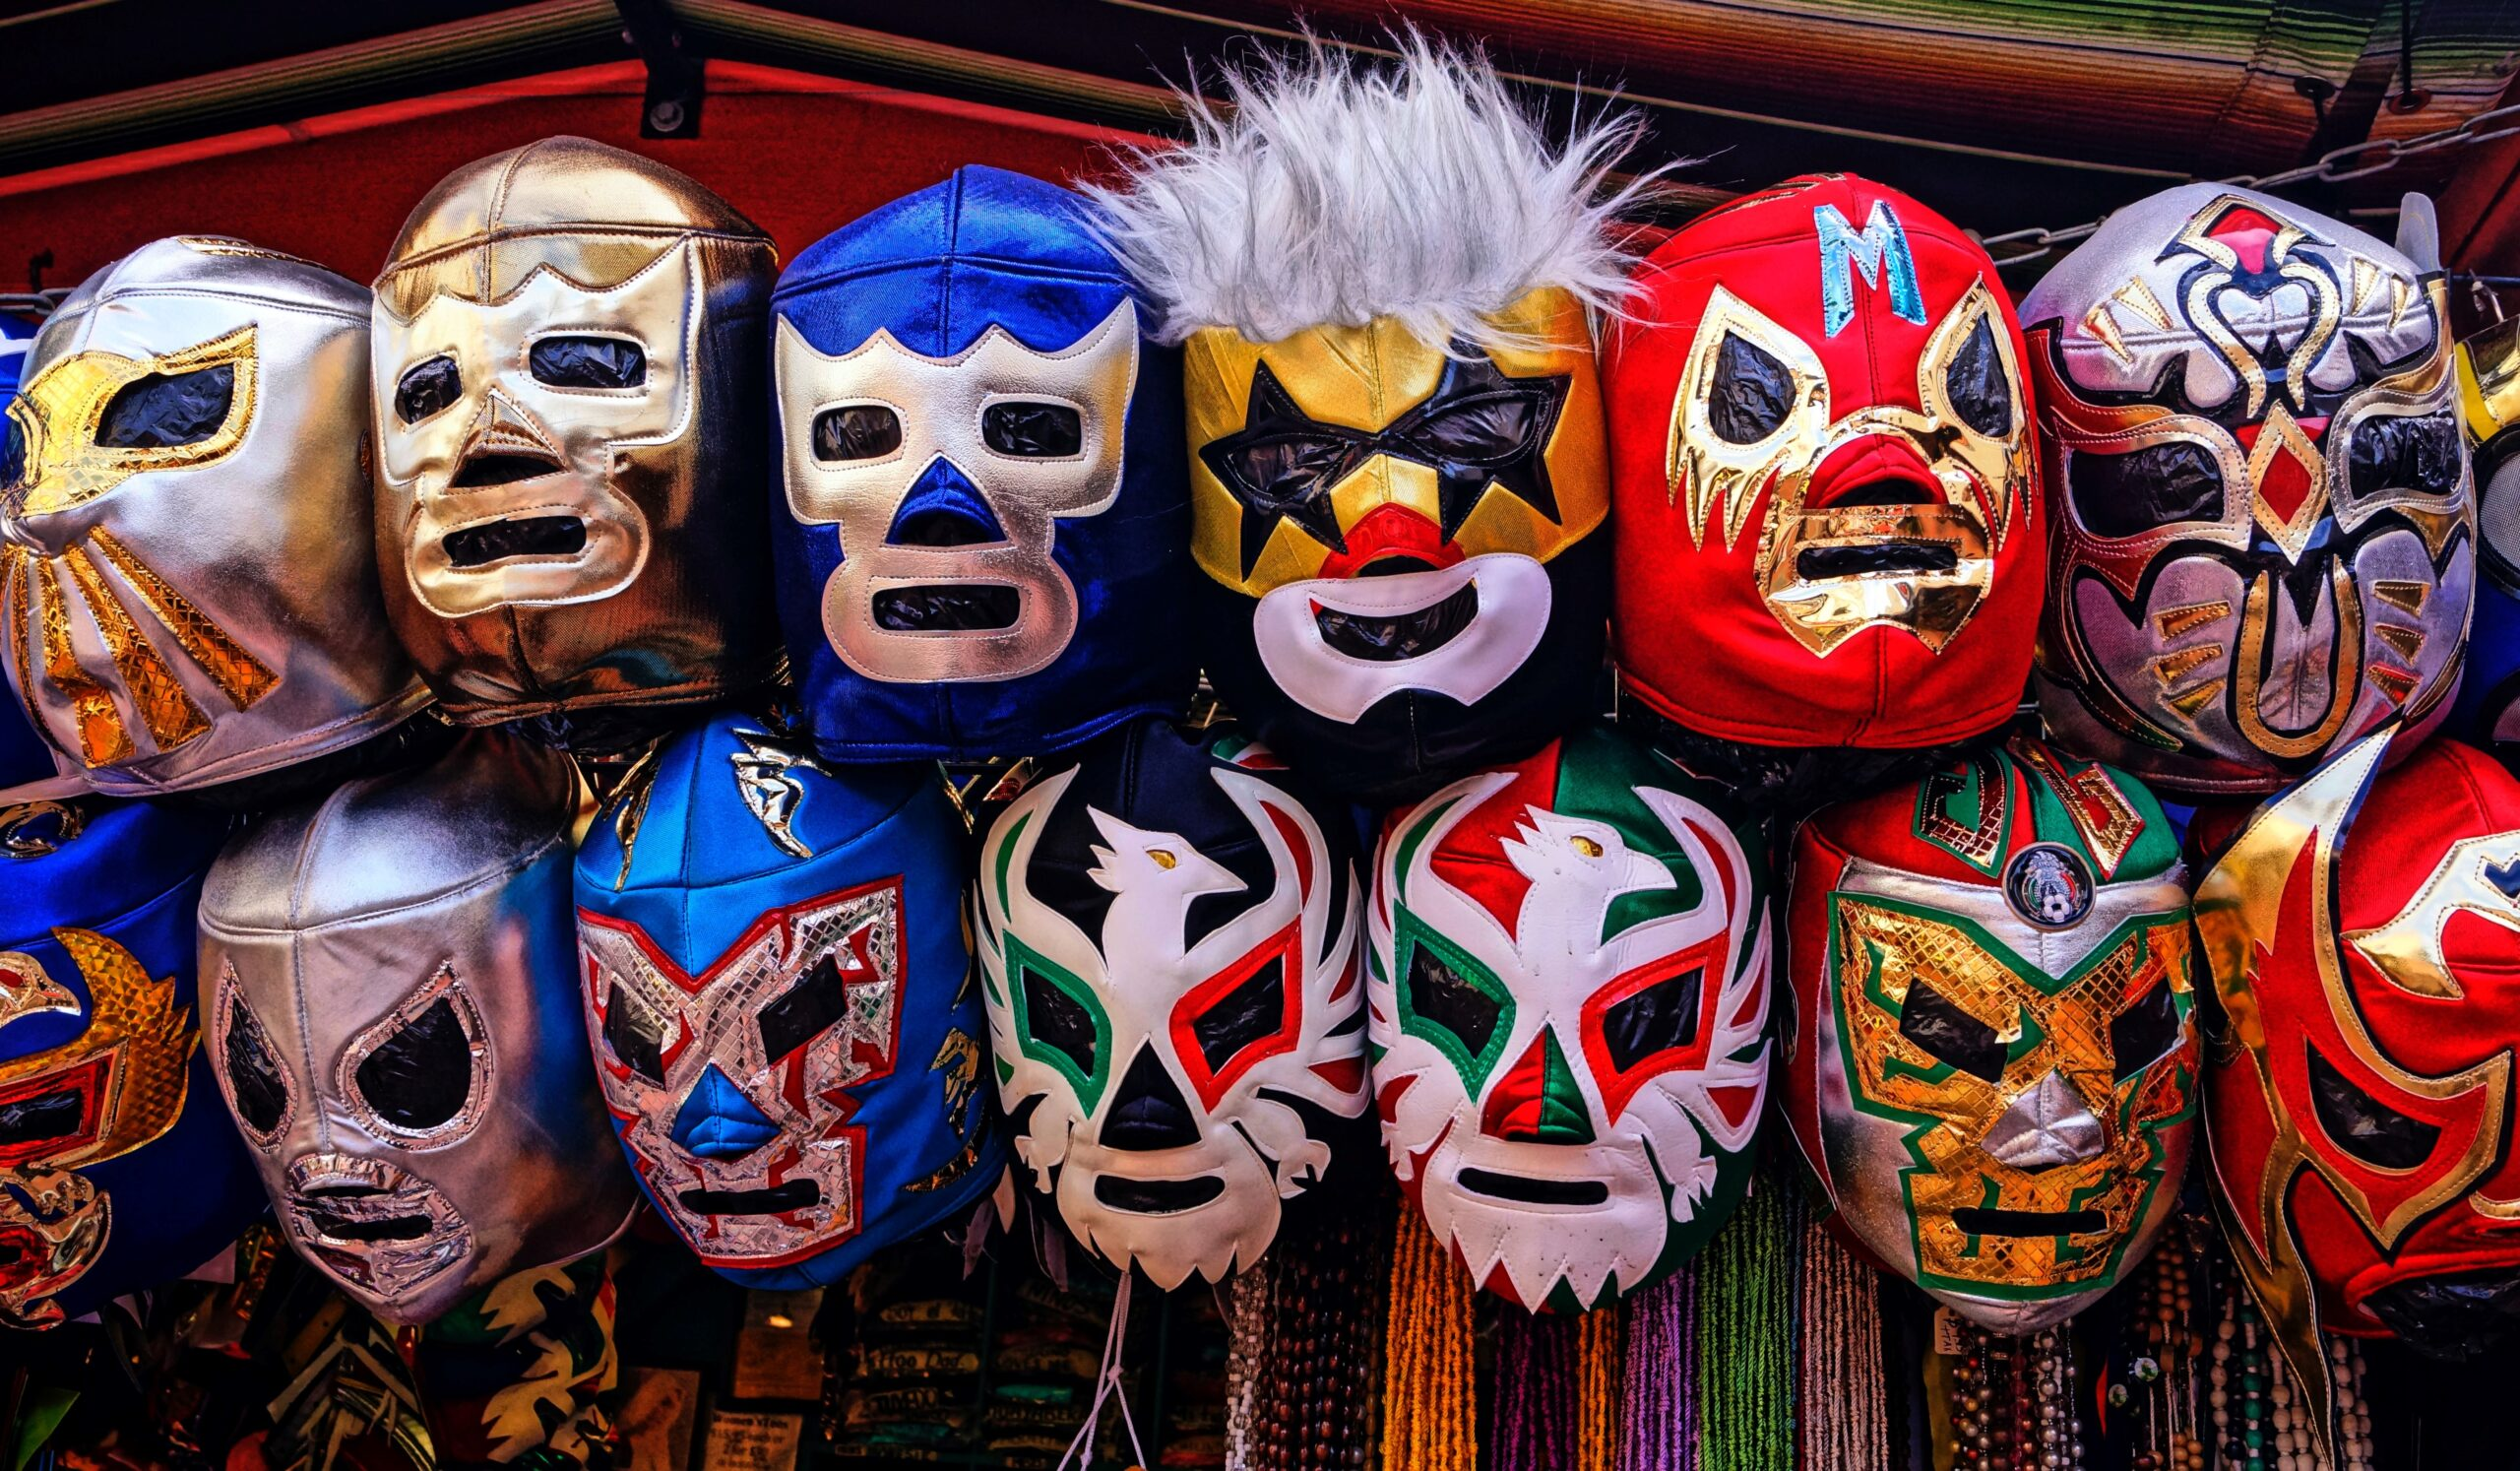 <p>Lucha libre is extremely popular in Mexico, where masks used in the matches are sold in stalls and sport stores. Many children want to practice it and become lucha libre stars. (Larry Costales / Unsplash)</p>